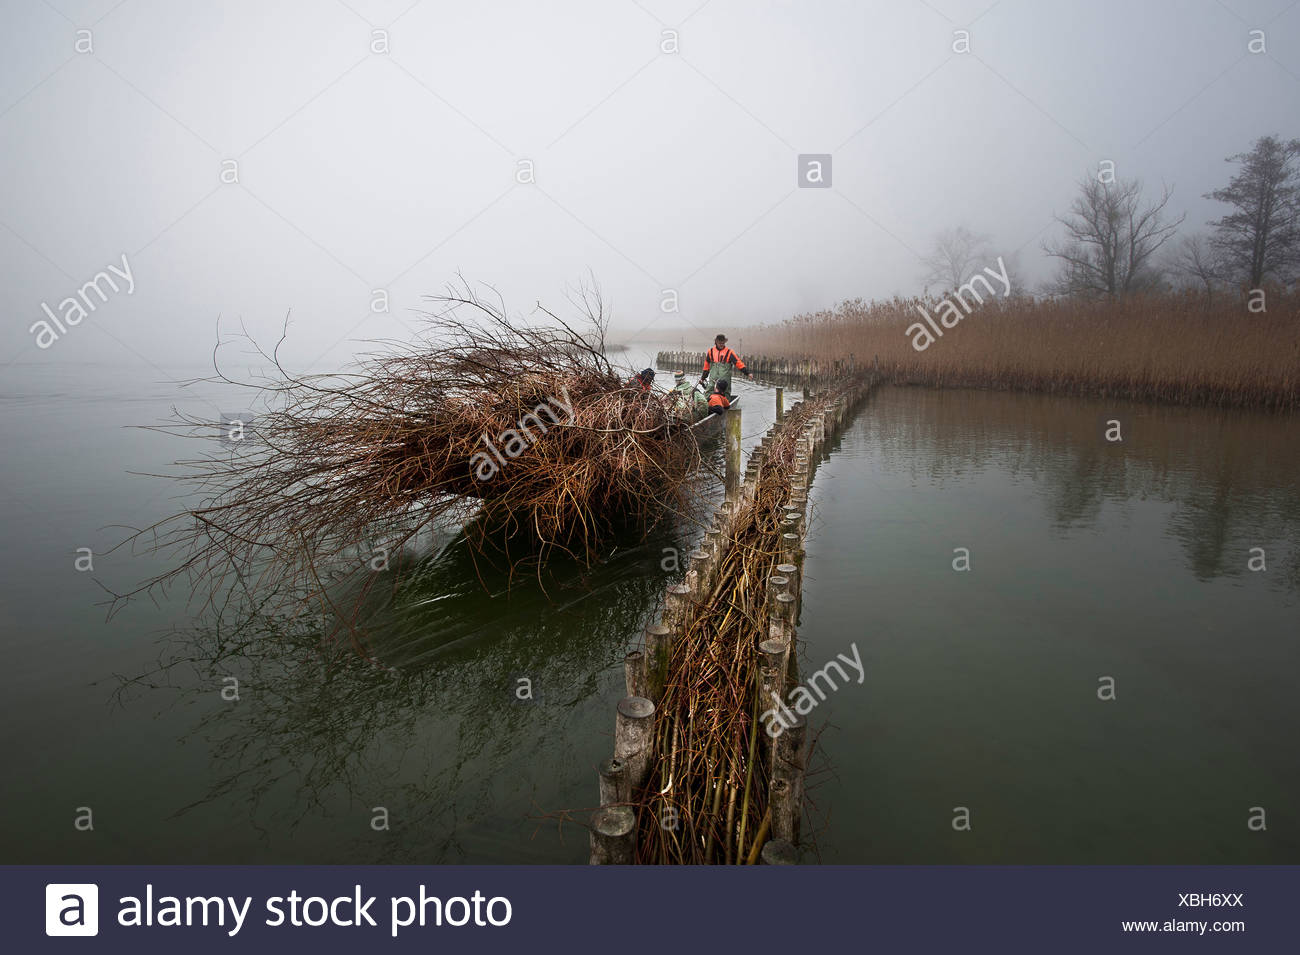 bank protection, lake of Biel, lake, pastures, willows, nature, nature conservation, unemployed person's project, lake, water, r - Stock Image